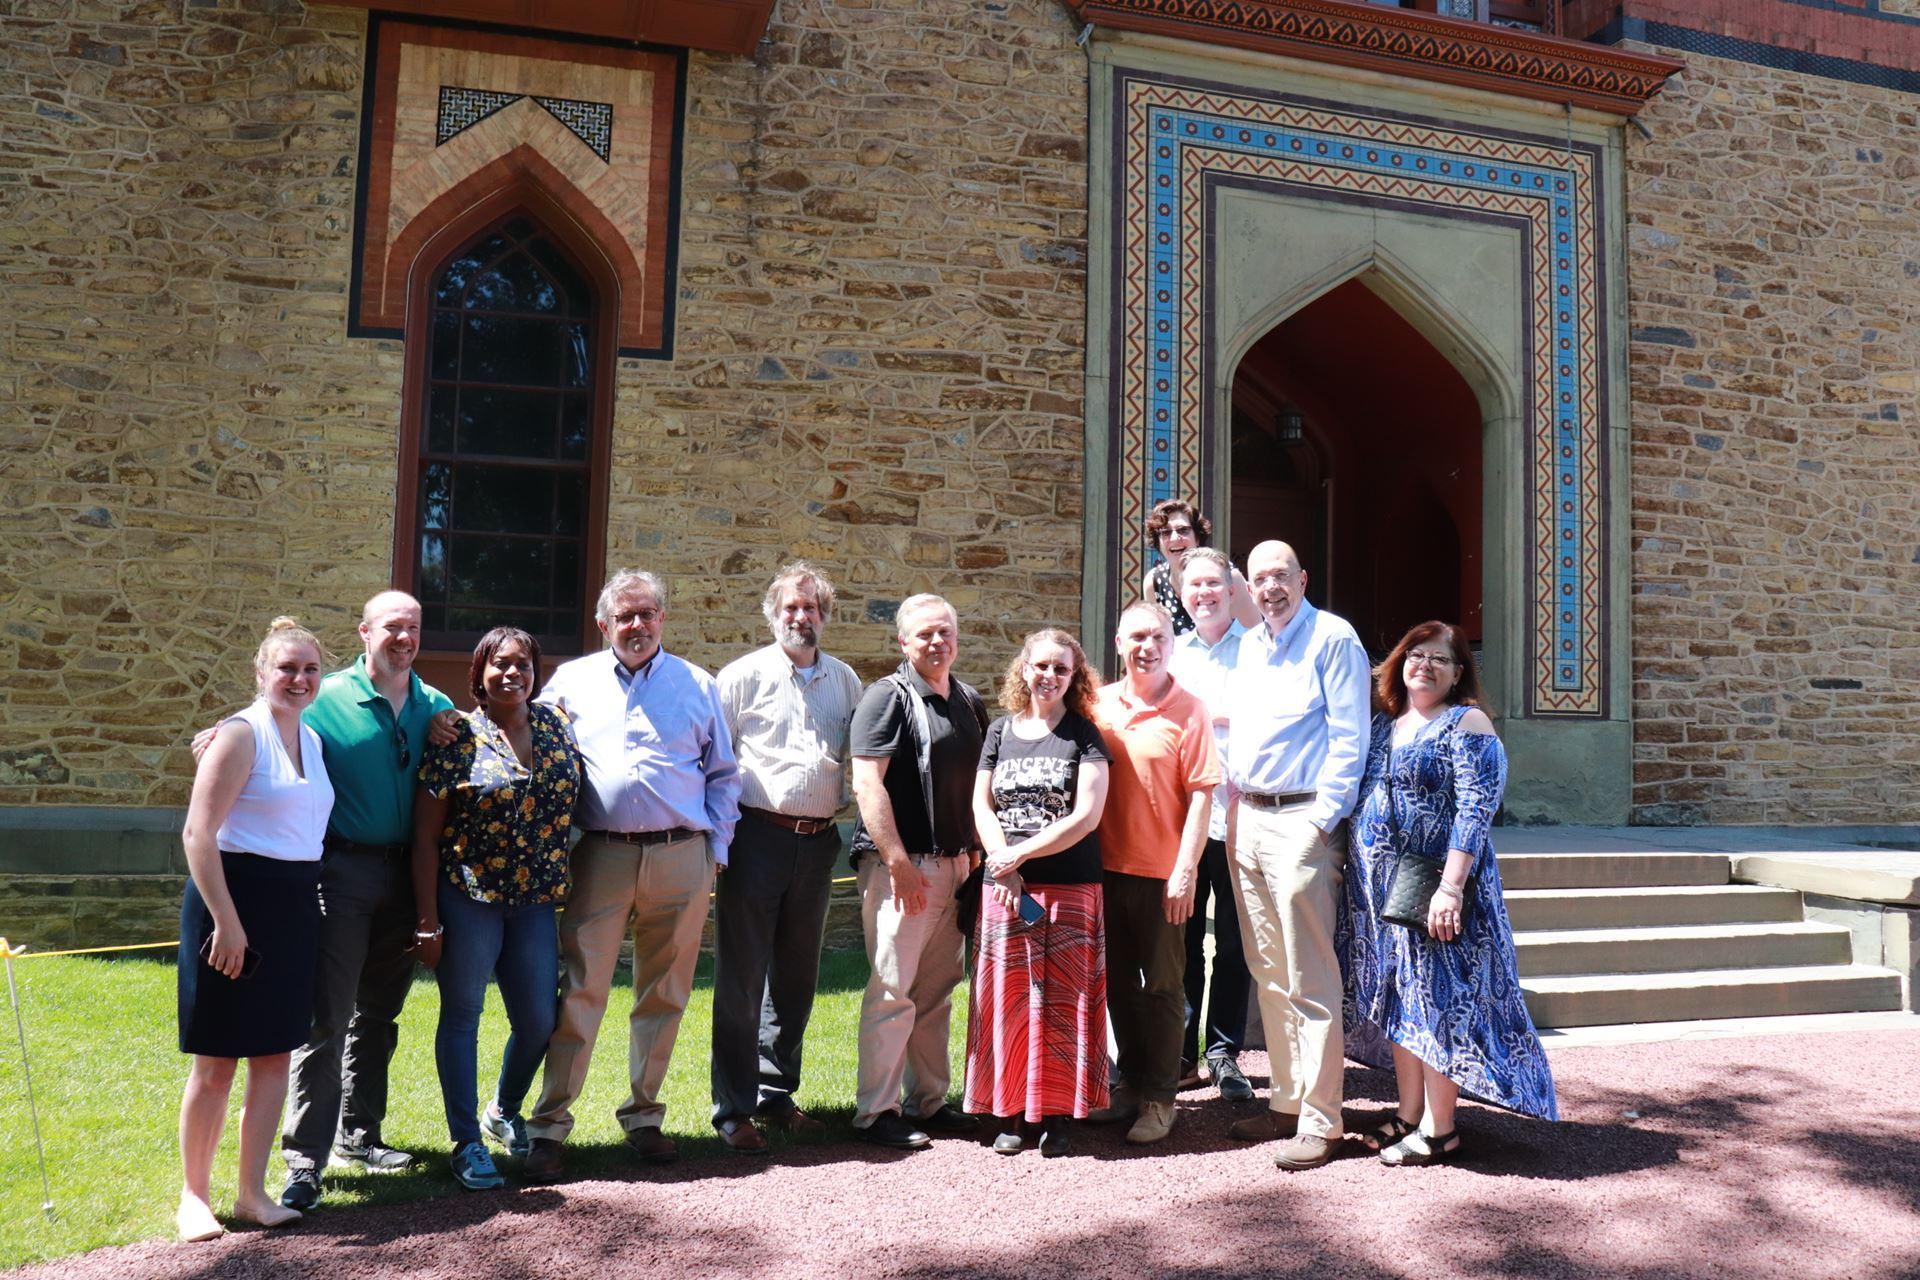 Today MANY board and staff traveled to Olana State Historic Site for our June meeting. What an incredible place to meet as we work to better serve #nysmuseums and strengthen our organization.